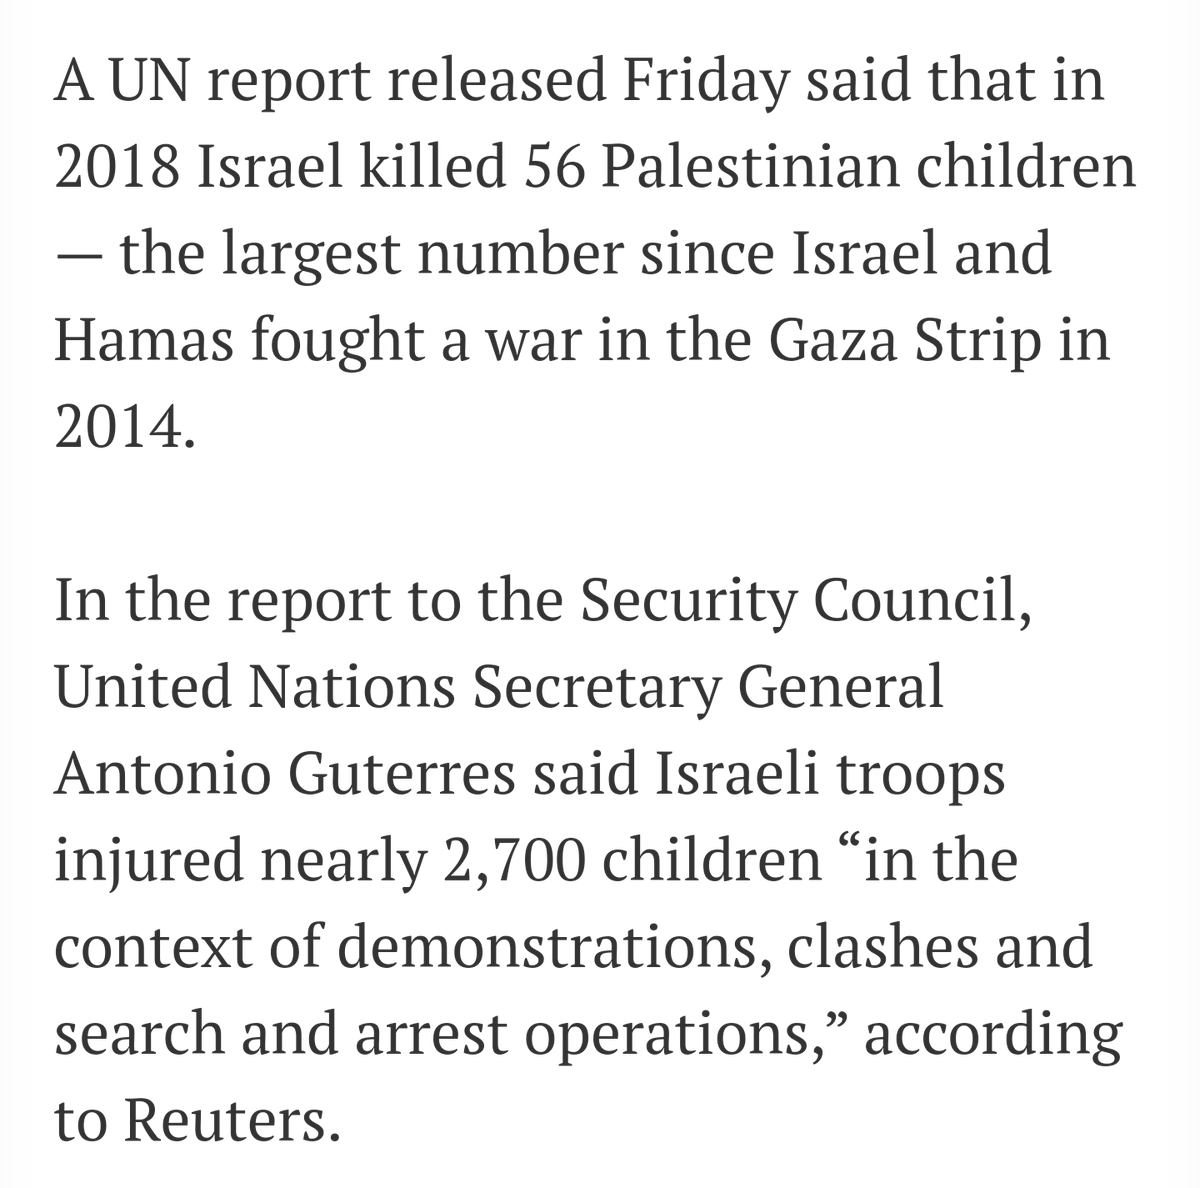 IDF targets kids deliberately. Stop lying. Shooting little kids is something Israel is proud of. Israel doesn't regret shit otherwise they wouldn't continue doing it for 75 years. IDF uses kids as human shields. You can't keep lie about that anymore.   https://twitter.com/ErikGustafsson_/status/1229522964732928000?s=09…pic.twitter.com/jbTMIWUZrX